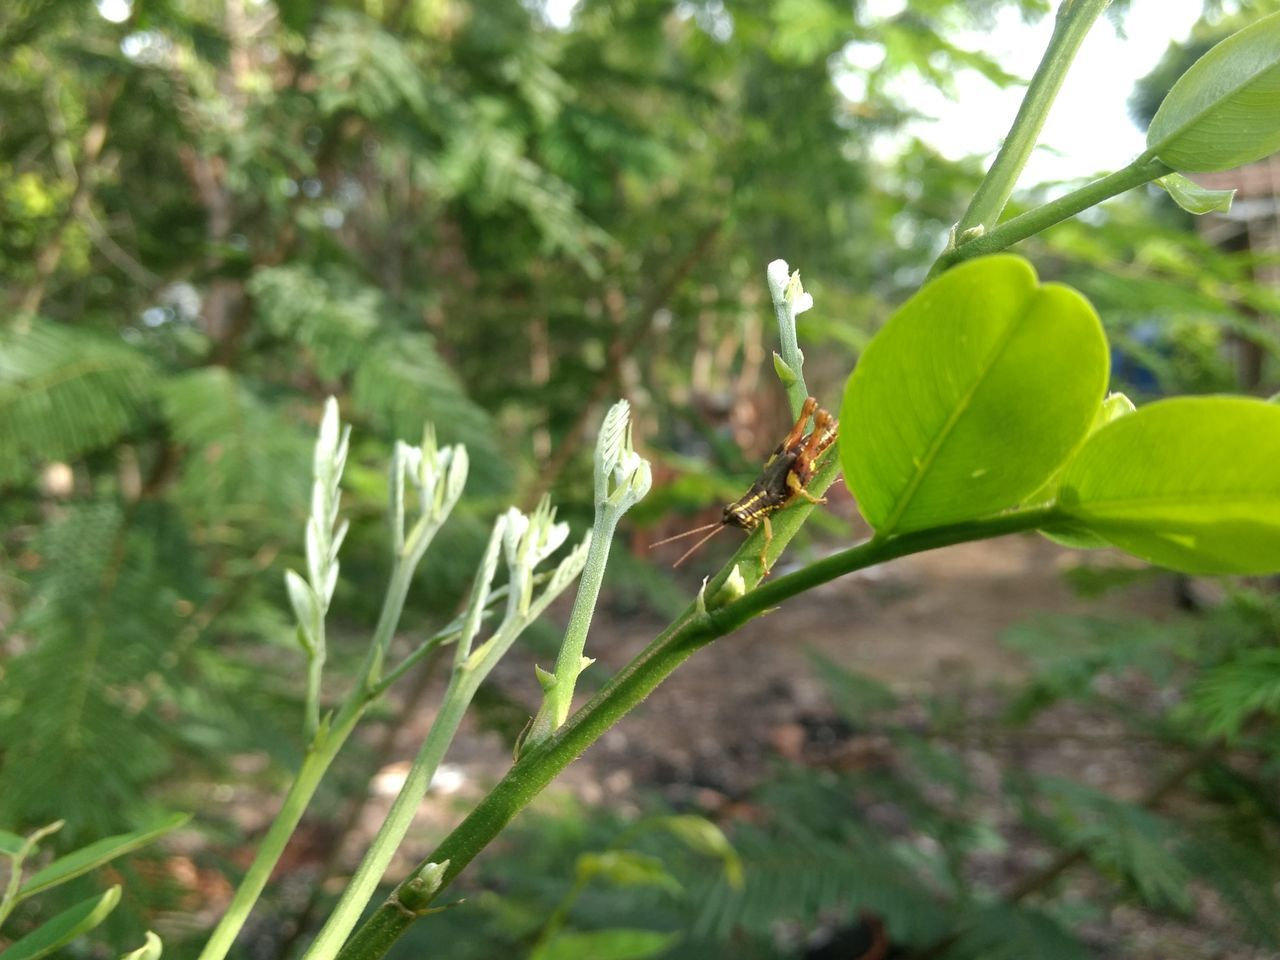 green color, insect, growth, nature, animals in the wild, plant, one animal, animal themes, leaf, outdoors, no people, day, animal wildlife, close-up, beauty in nature, freshness